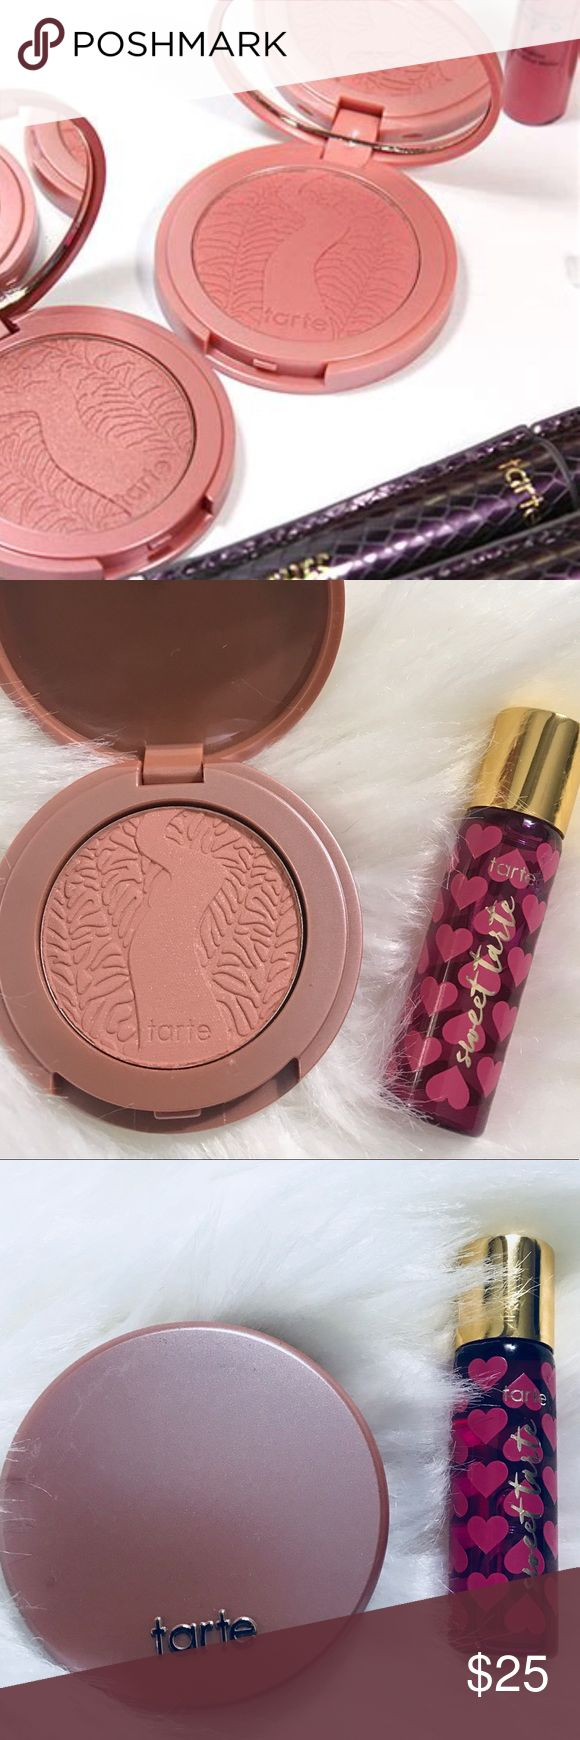 "✨💄x2 Tarte blush New shade concept ""& sweet tarte All brand new Tarte Amazon clay 12 hour wear blush 1.5 g/ 0.05 oz /! With travel Tarte perfume "" Sweet Tarte "" mini roller ball . All brand new from sets no box .  Deluxe travel size ! Add r bundles offer ! tarte Makeup Blush"